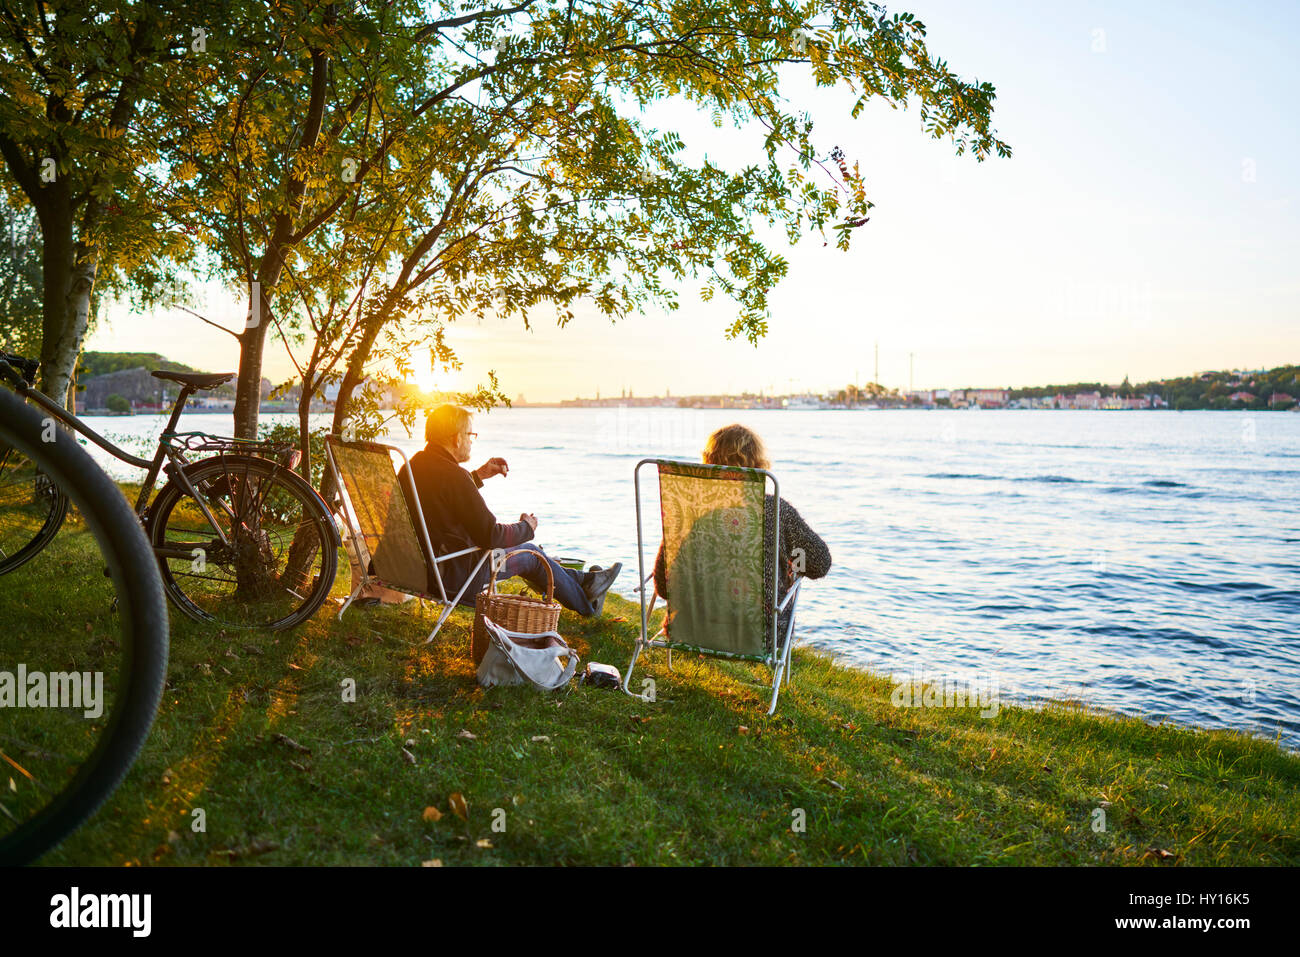 Sweden, Sodermanland, Nacka, Couple sitting on deckchair and relaxing - Stock Image